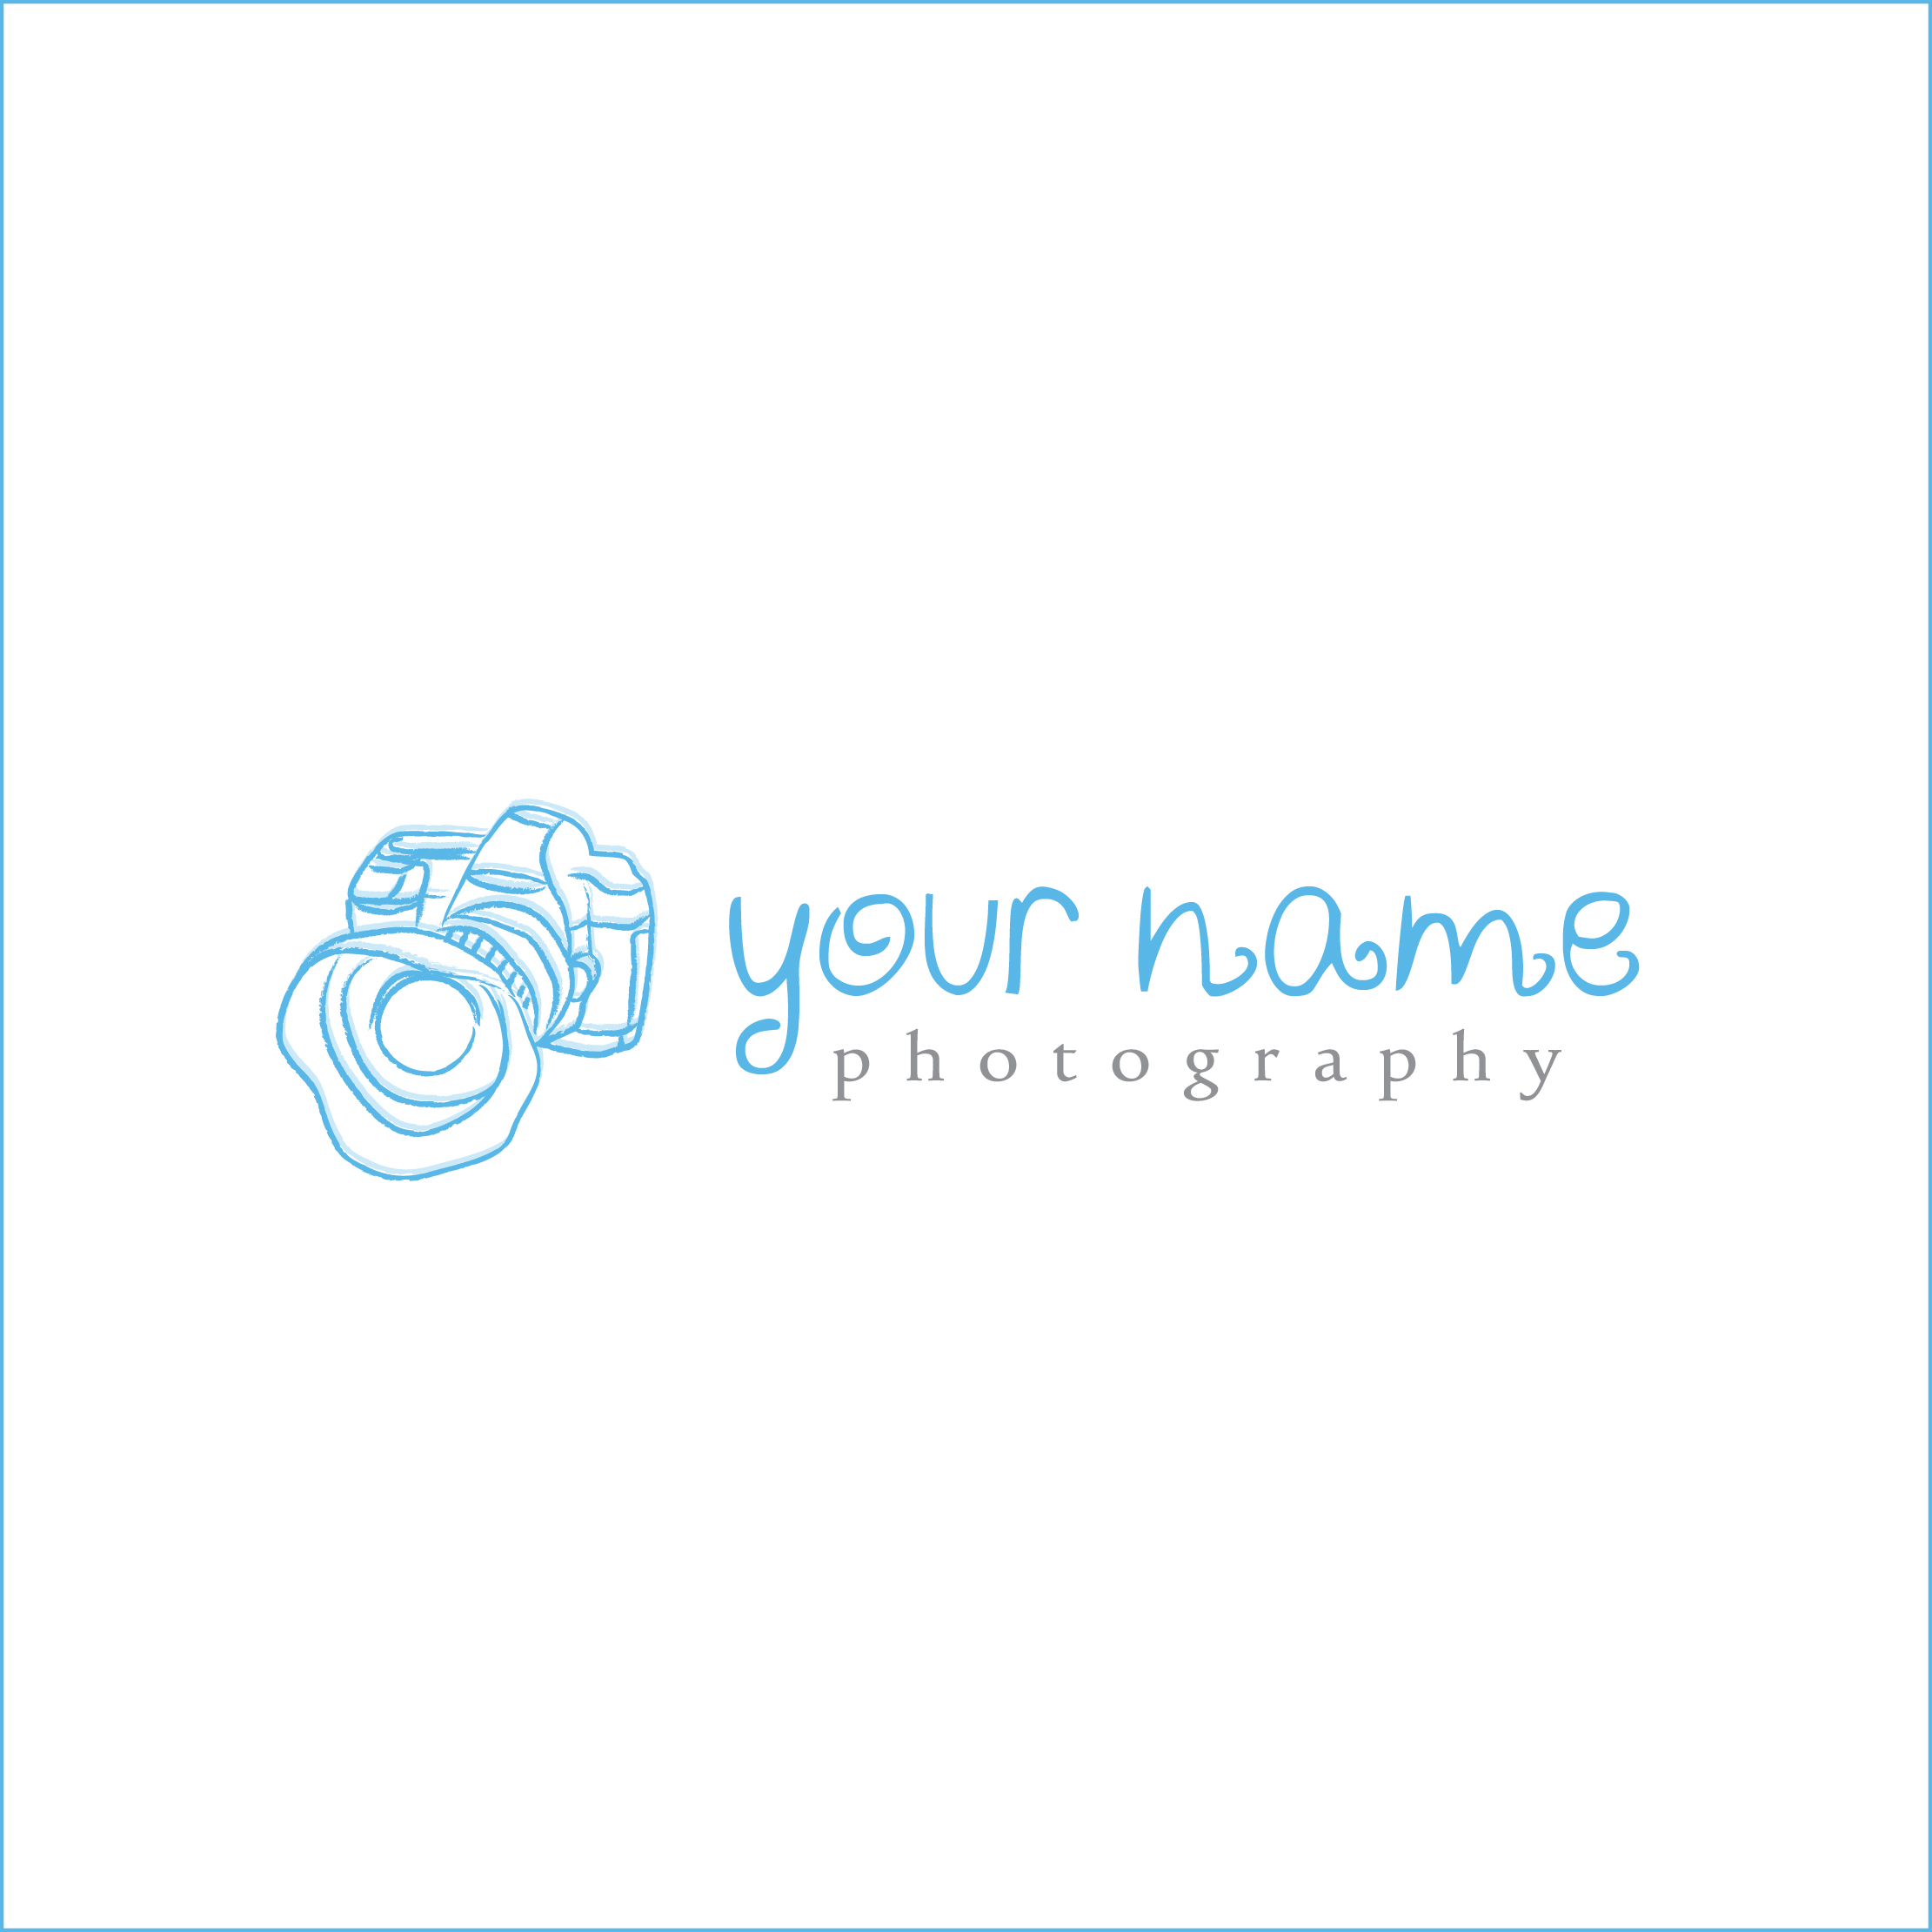 Premade Photography Logo: $35.00